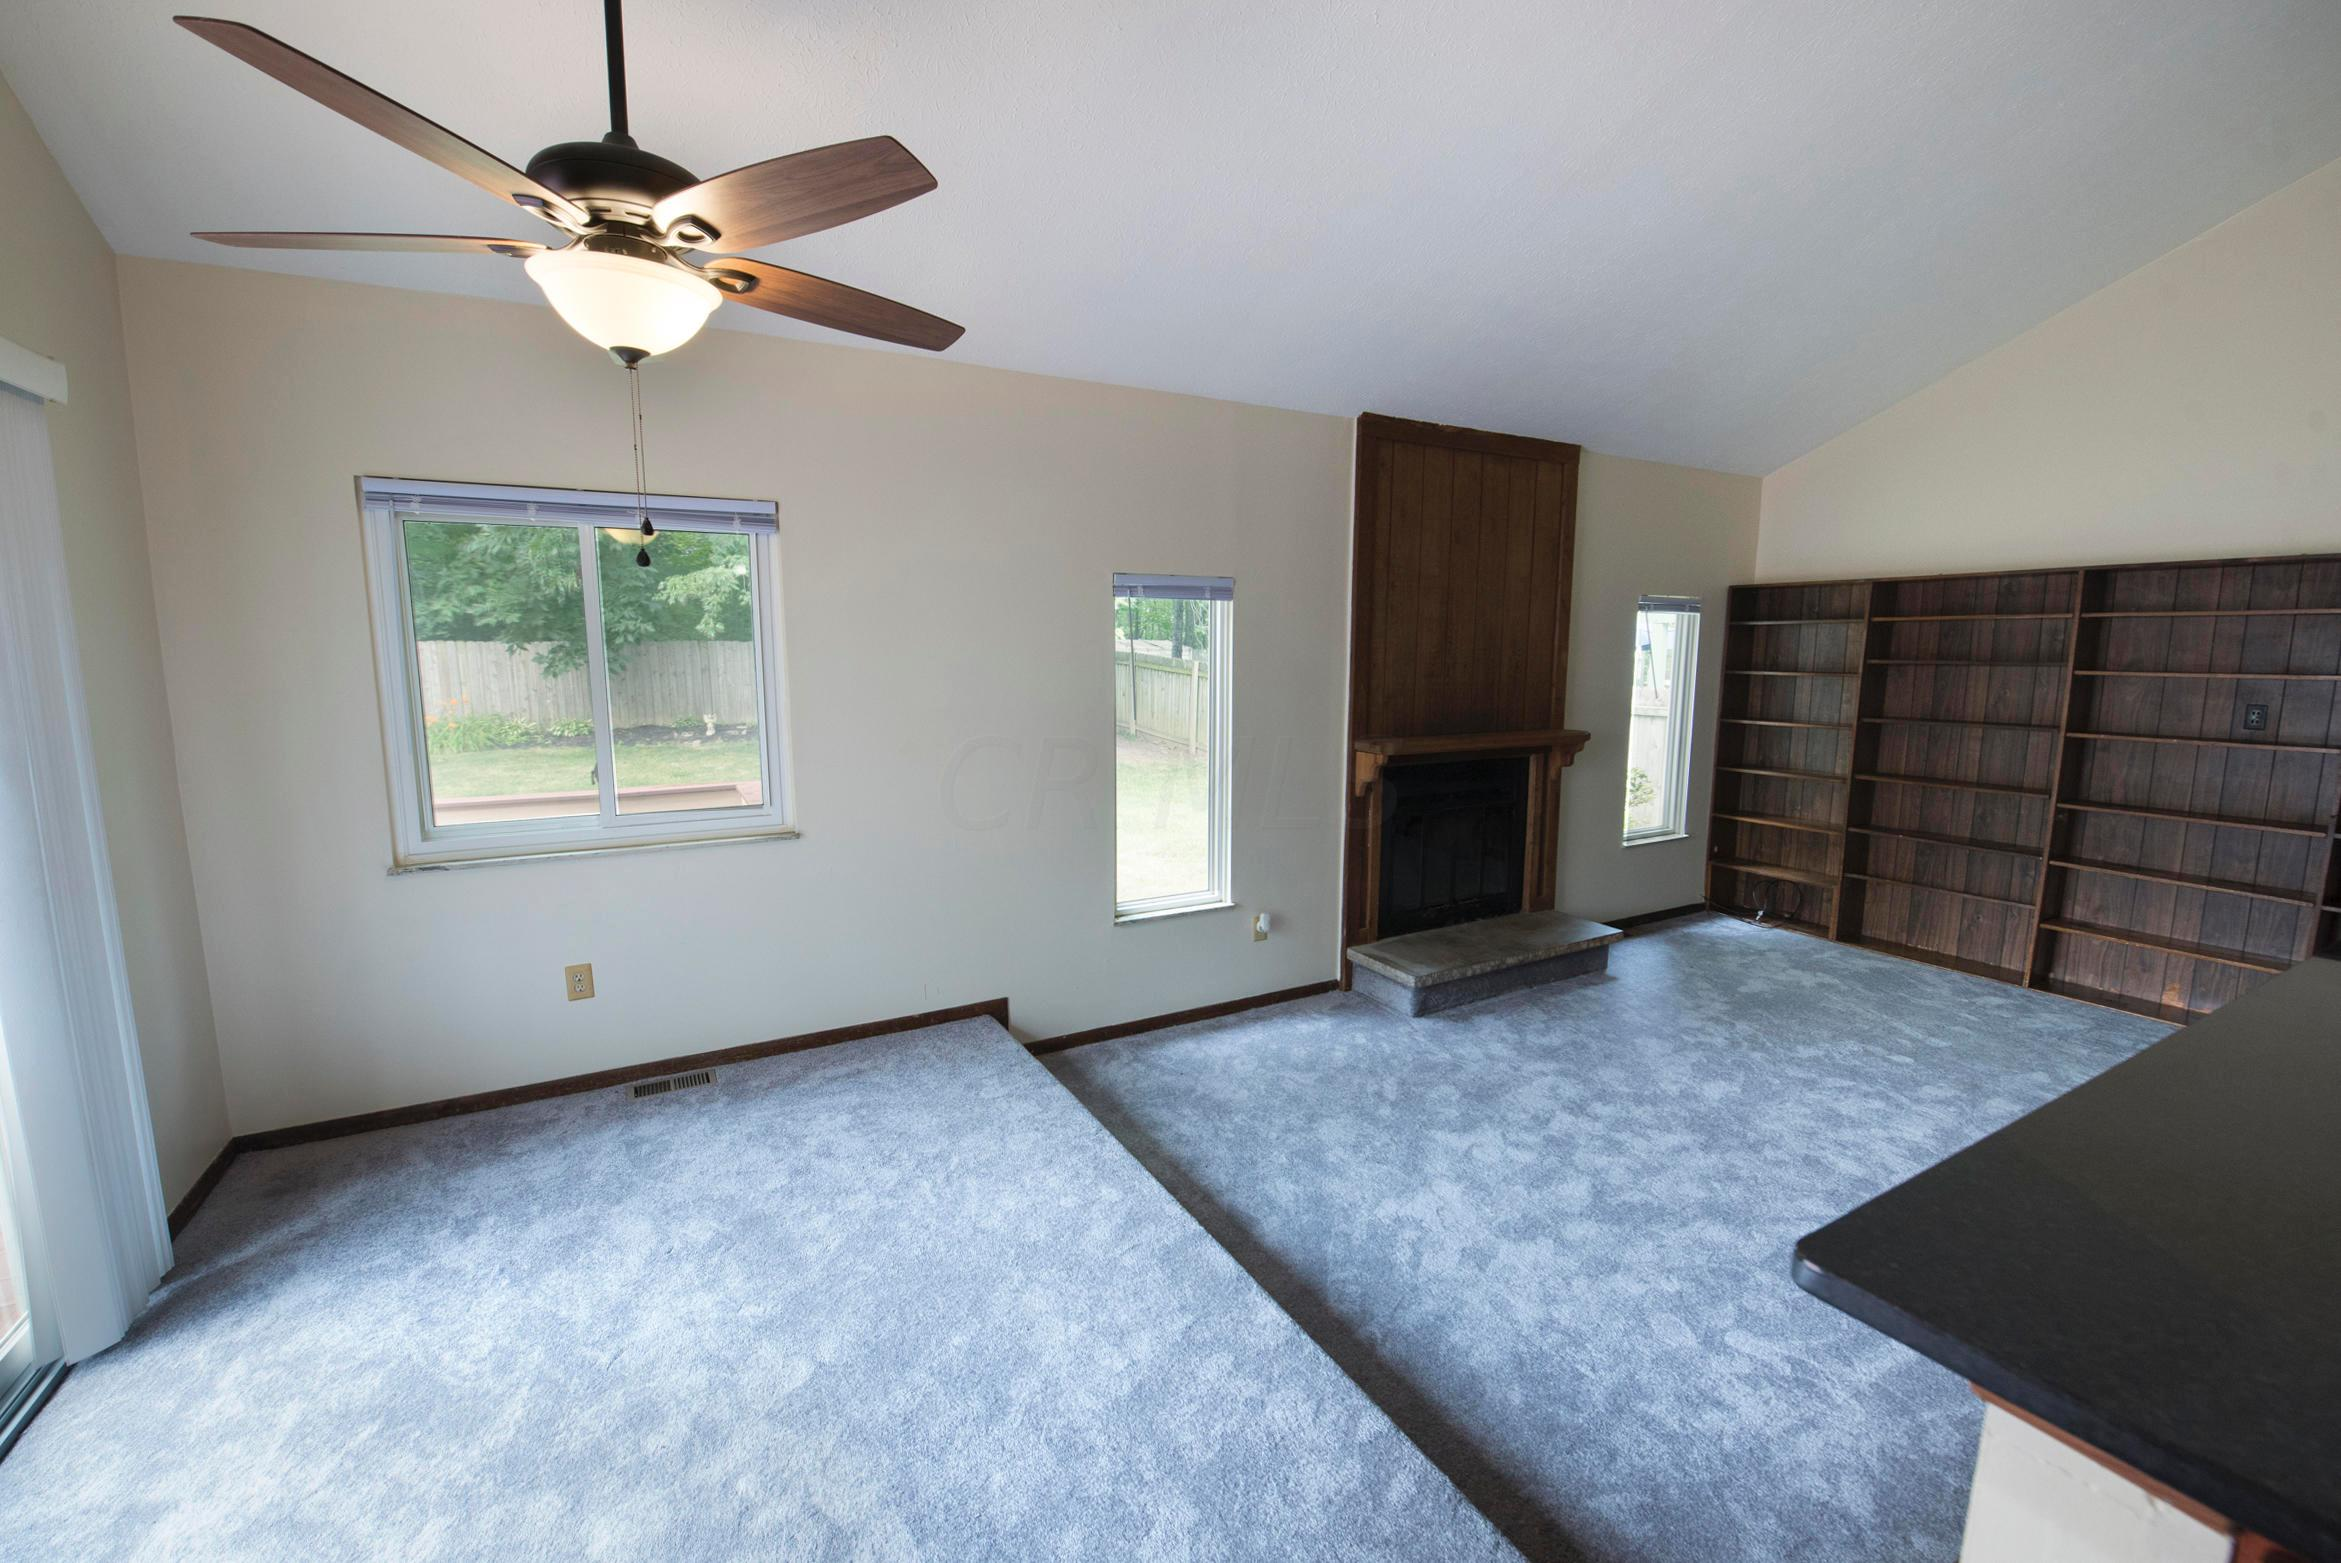 2664 Sawmill Meadows Avenue, Dublin, Ohio 43016, 4 Bedrooms Bedrooms, ,3 BathroomsBathrooms,Residential,For Sale,Sawmill Meadows,220024745